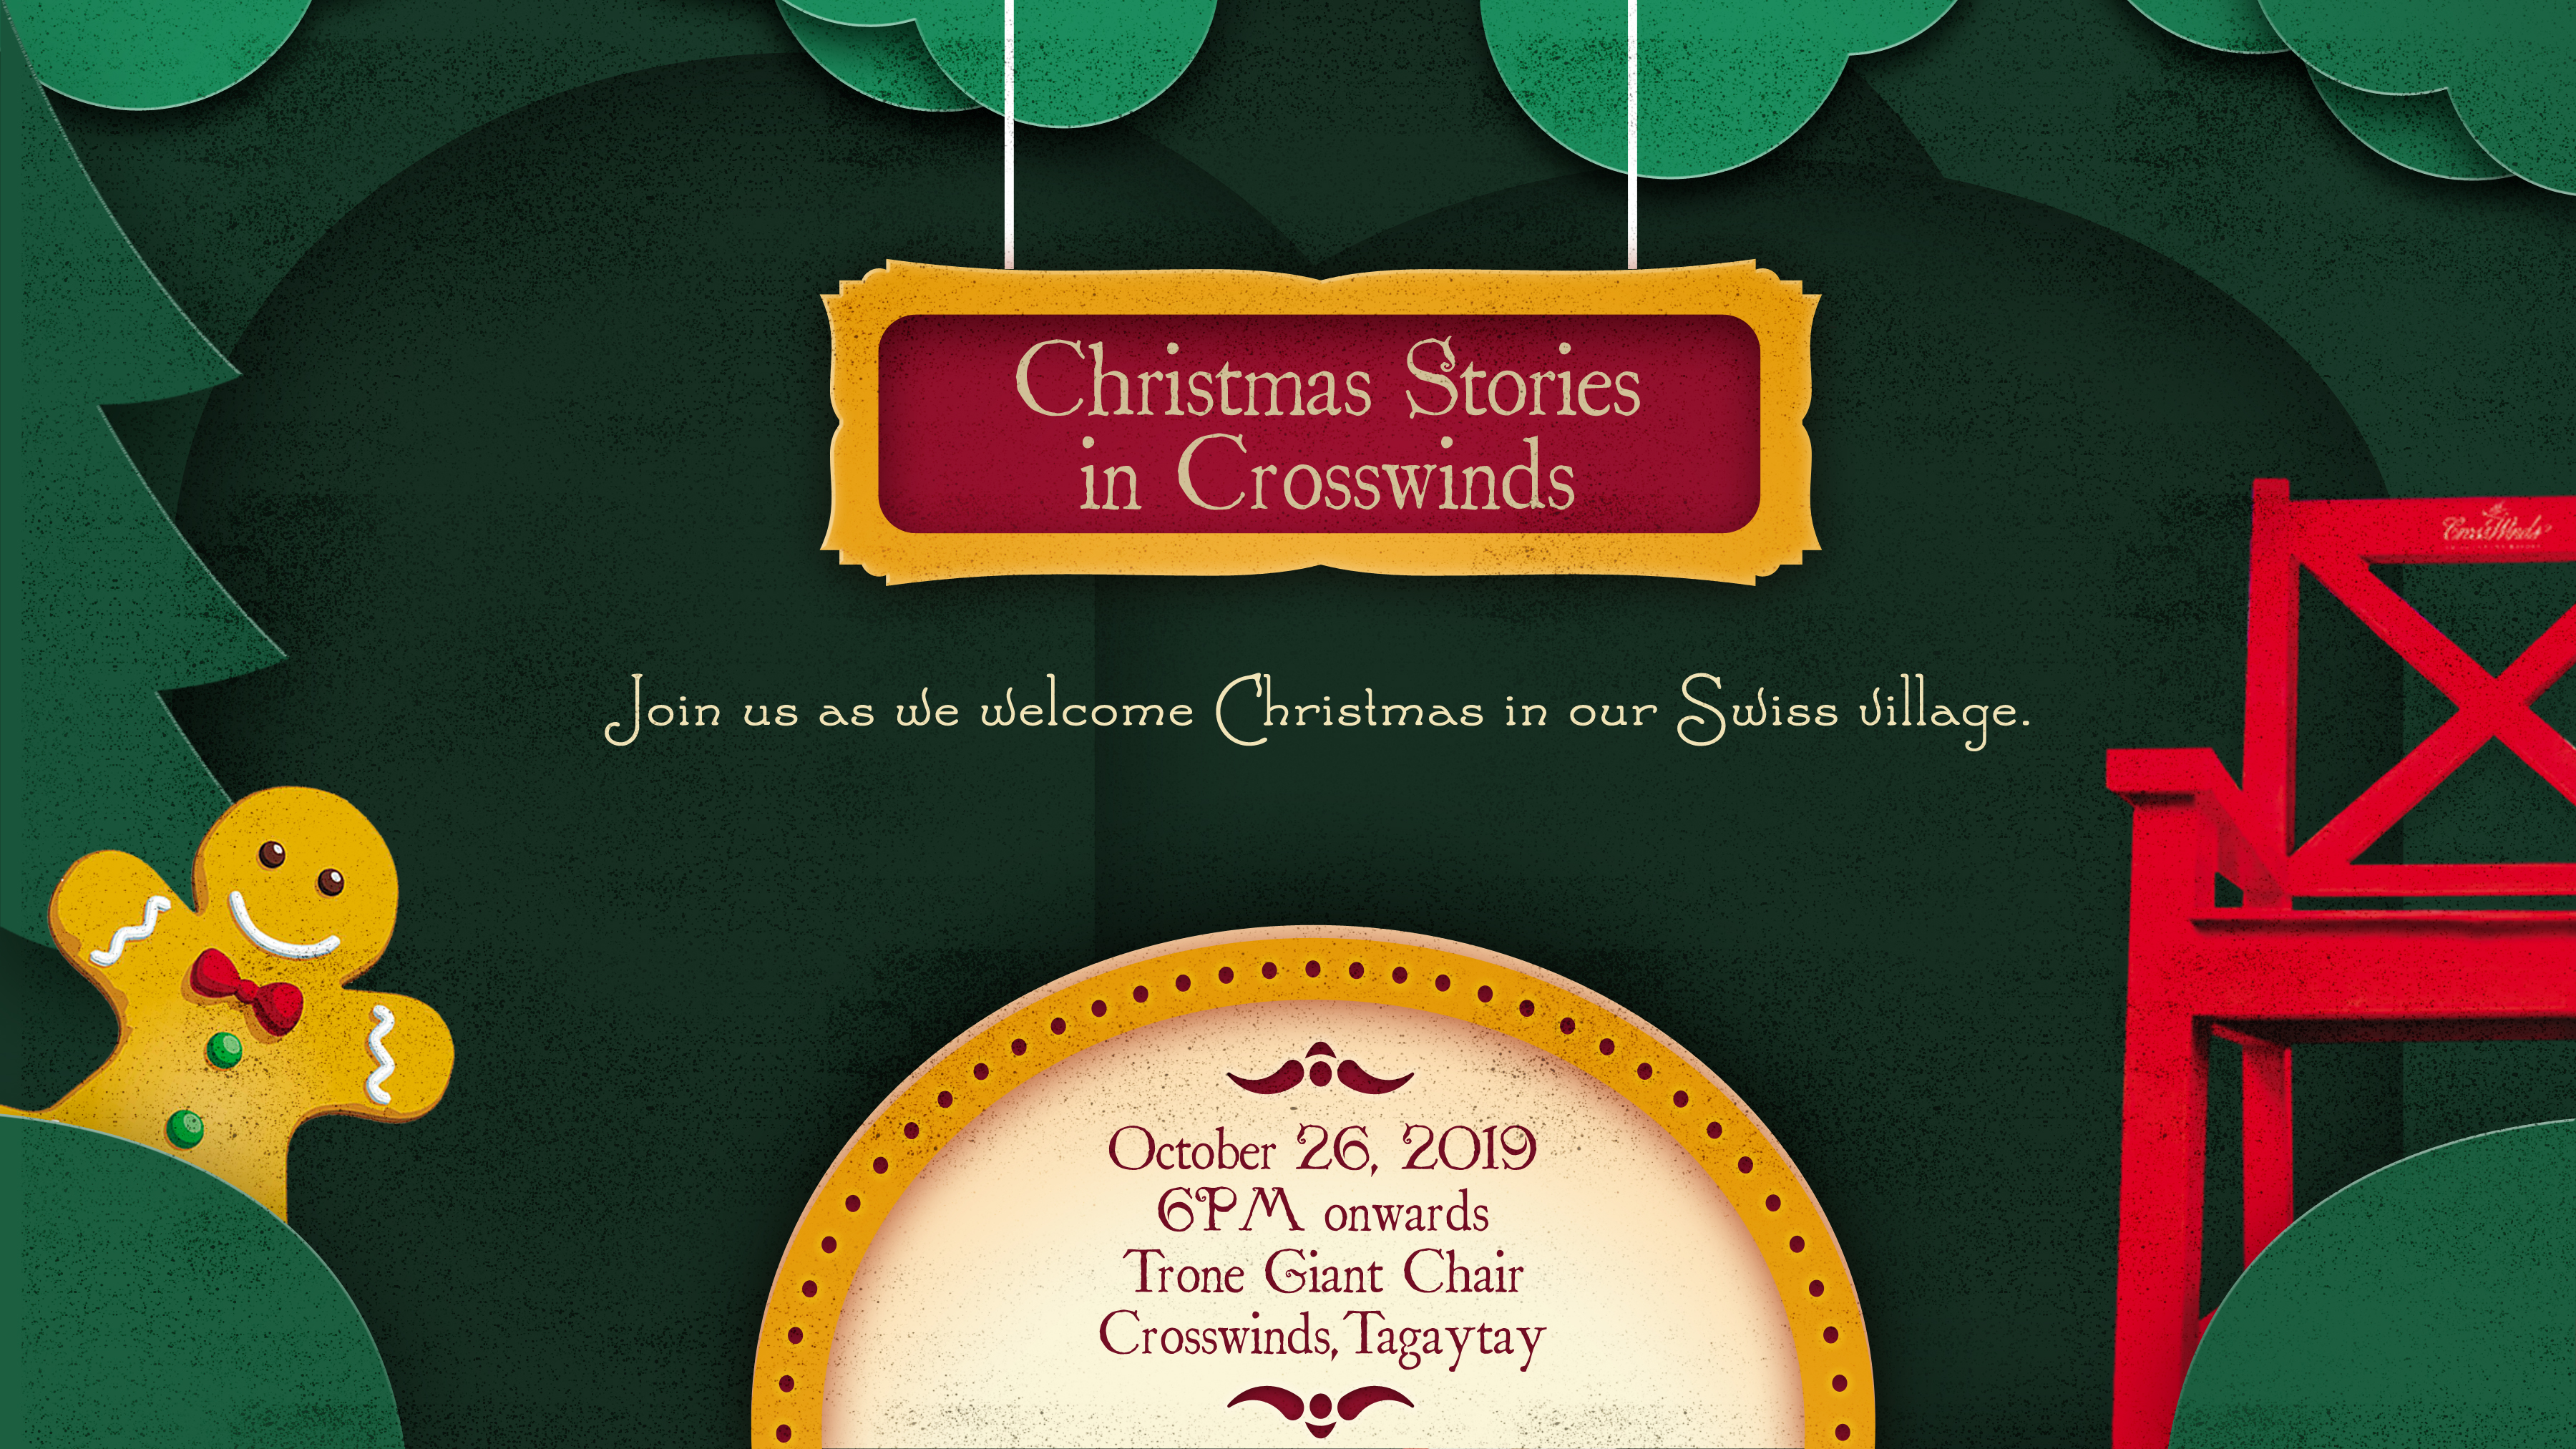 Christmas Stories In Crosswinds